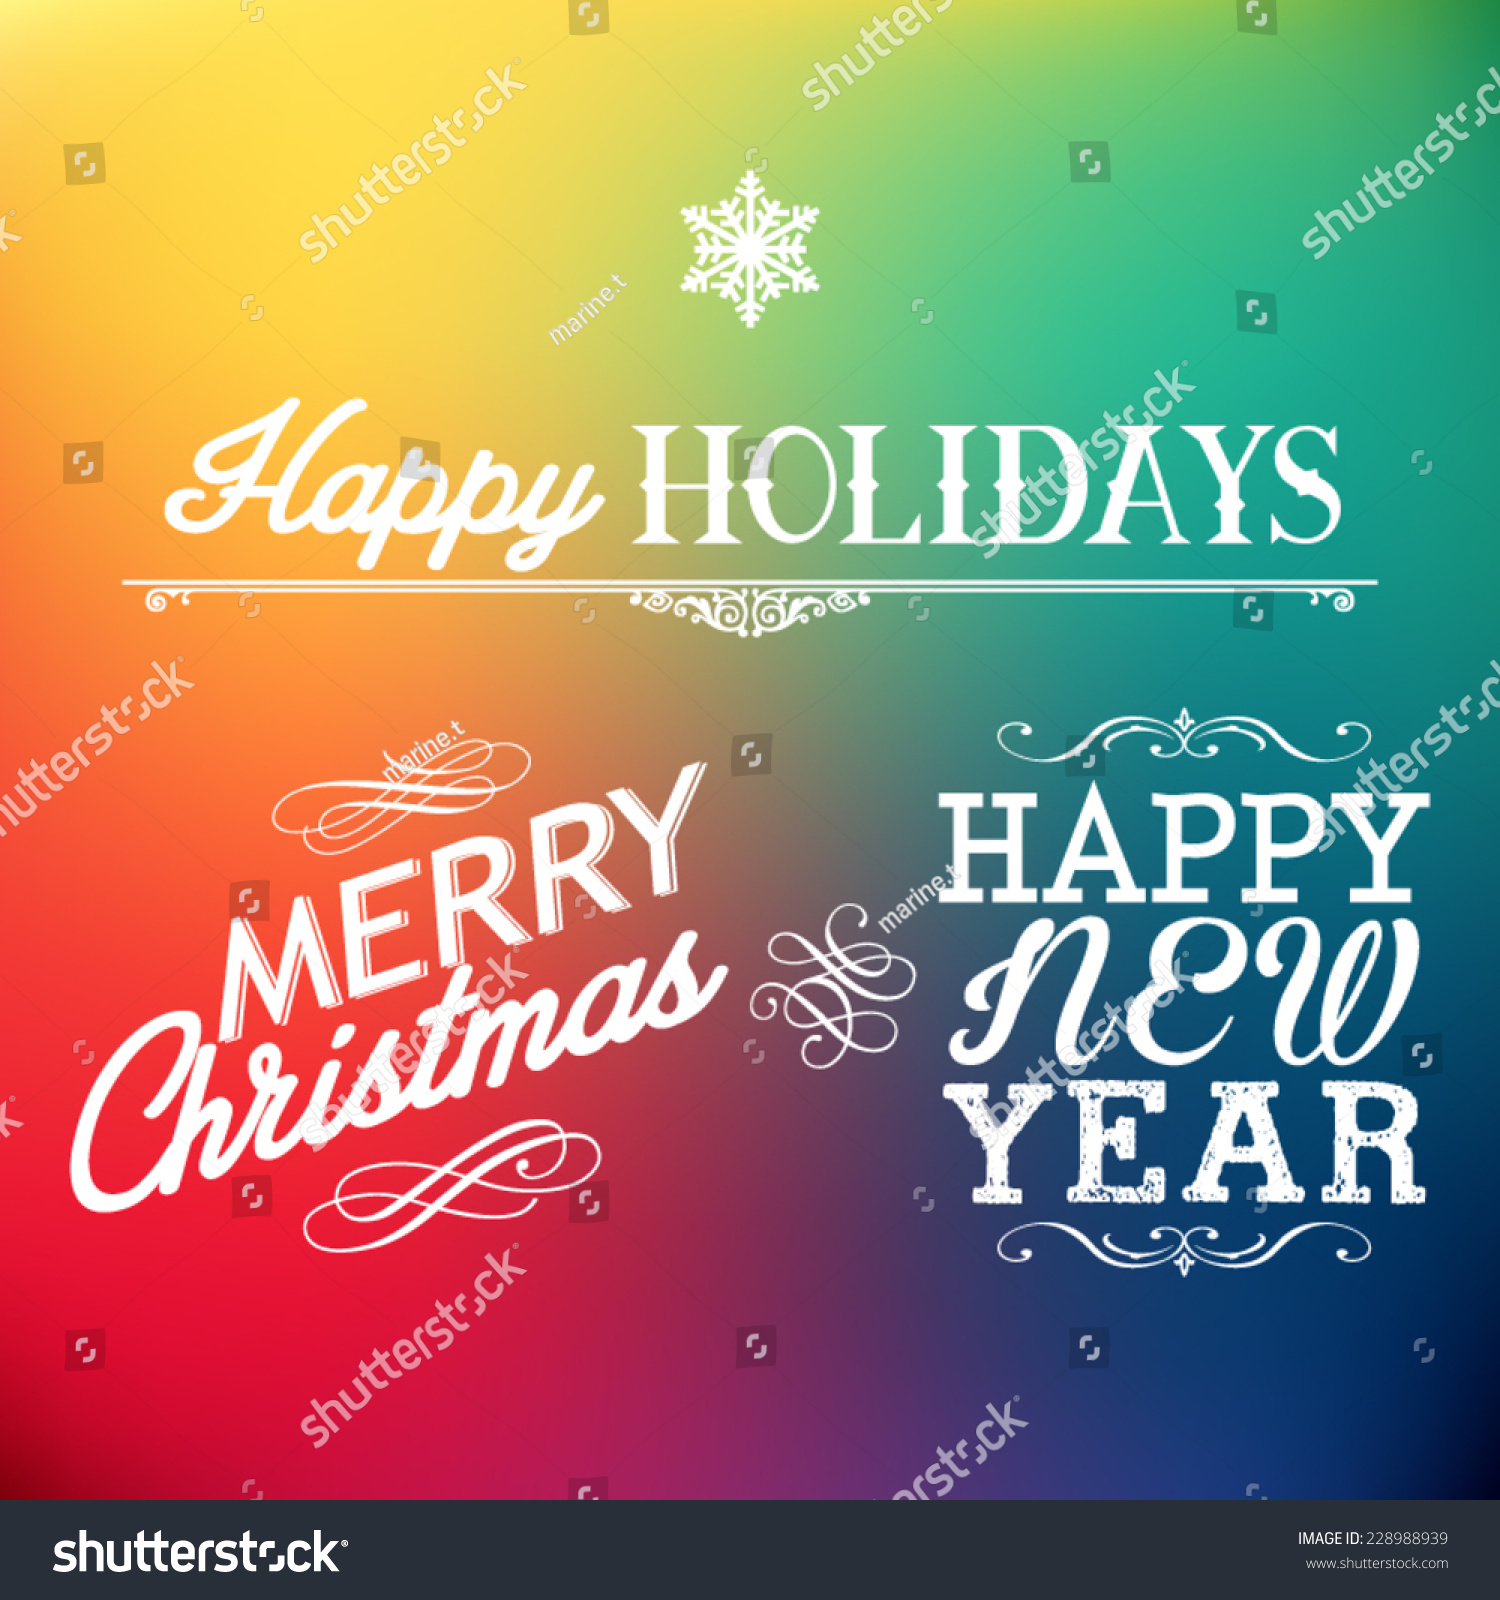 Seasons greetings happy holidays typography design stock vector seasons greetings happy holidays typography design m4hsunfo